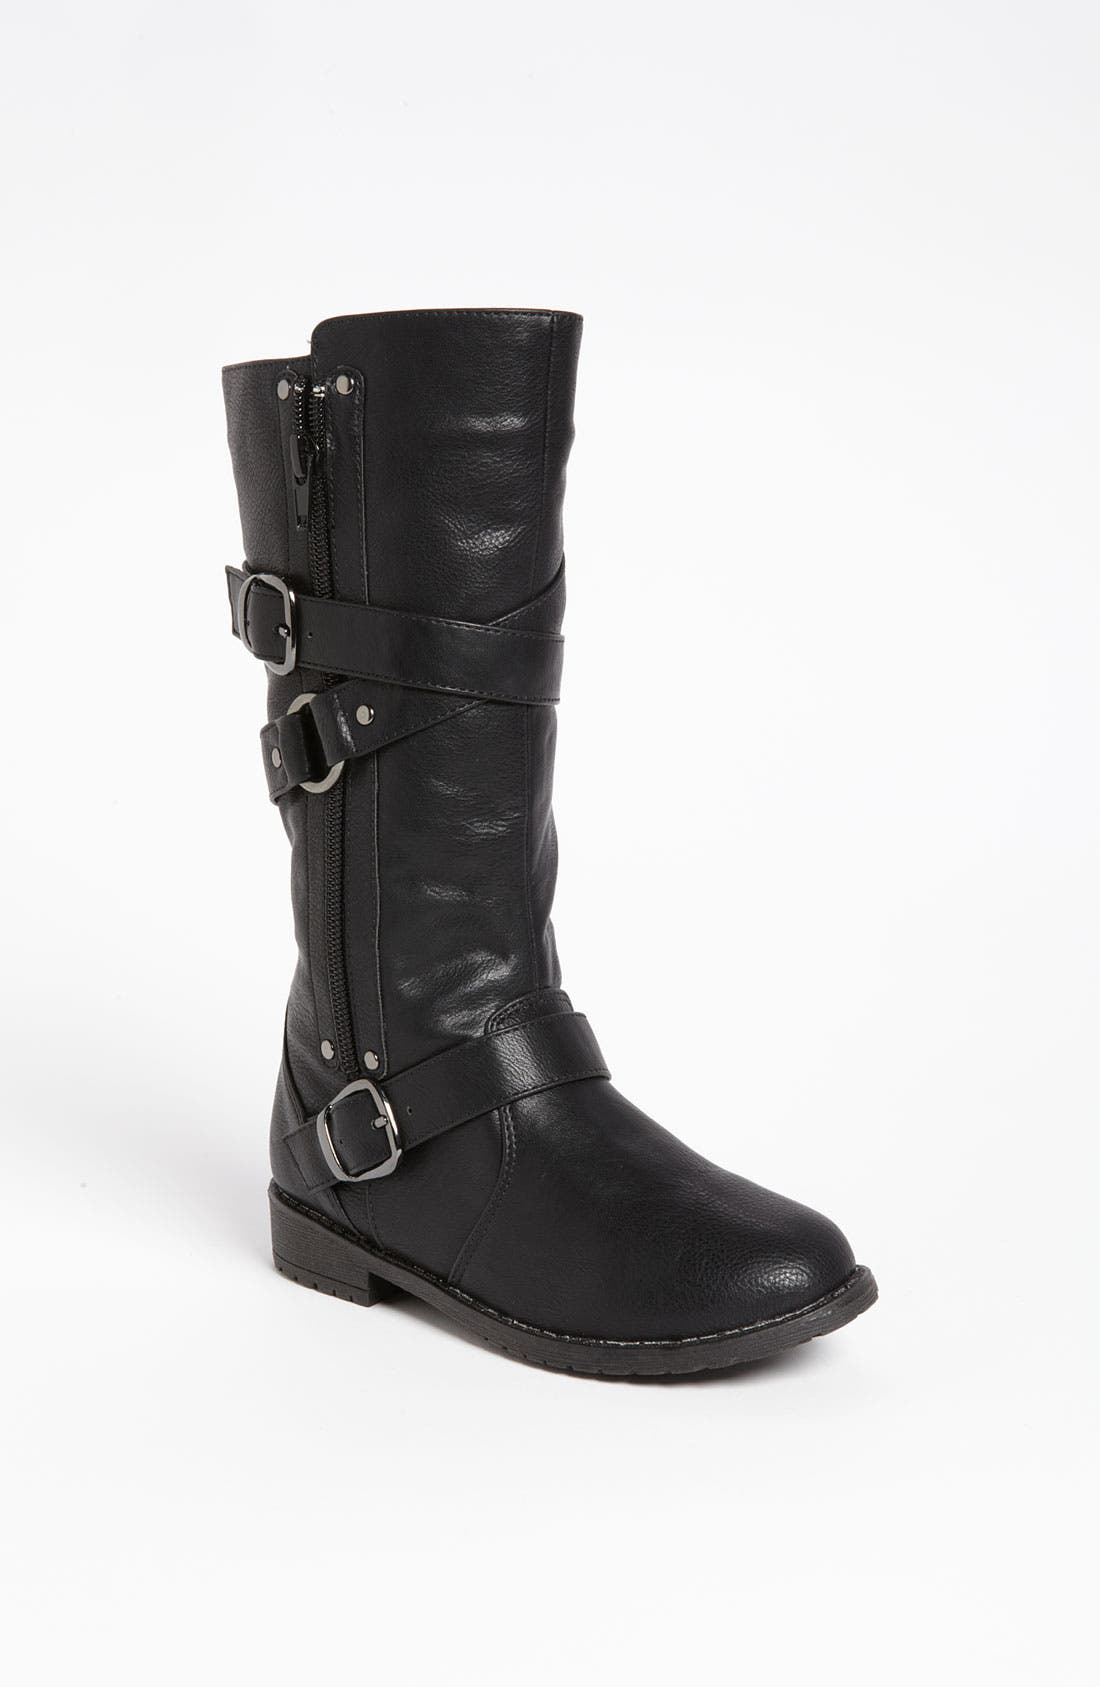 Alternate Image 1 Selected - Kenneth Cole Reaction 'Take a Flake' Boot (Walker, Toddler, Little Kid & Big Kid)